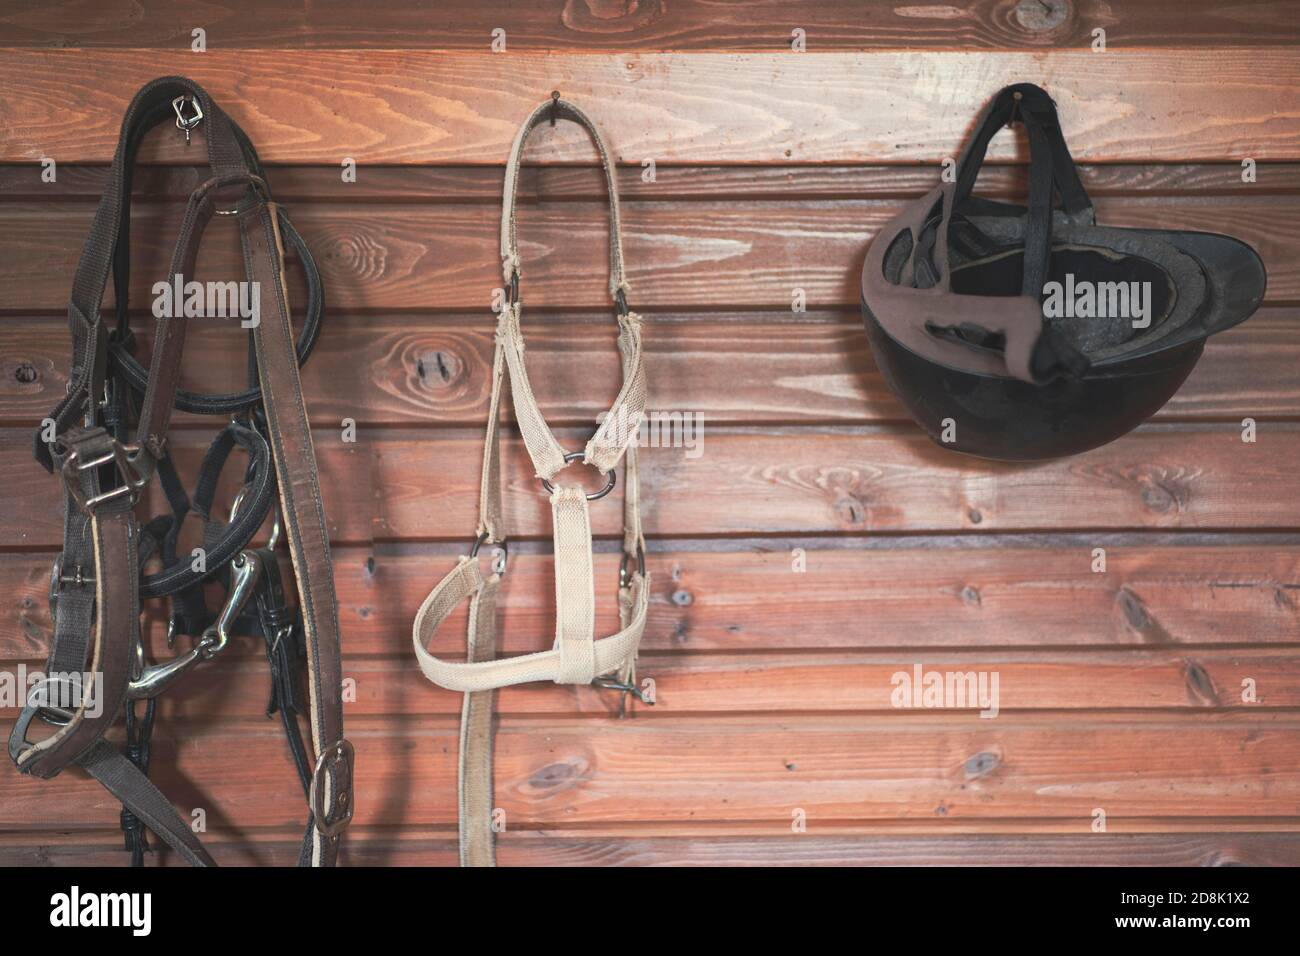 Horse riding concept items, helmet and bridle hangs on a wooden wall Stock Photo